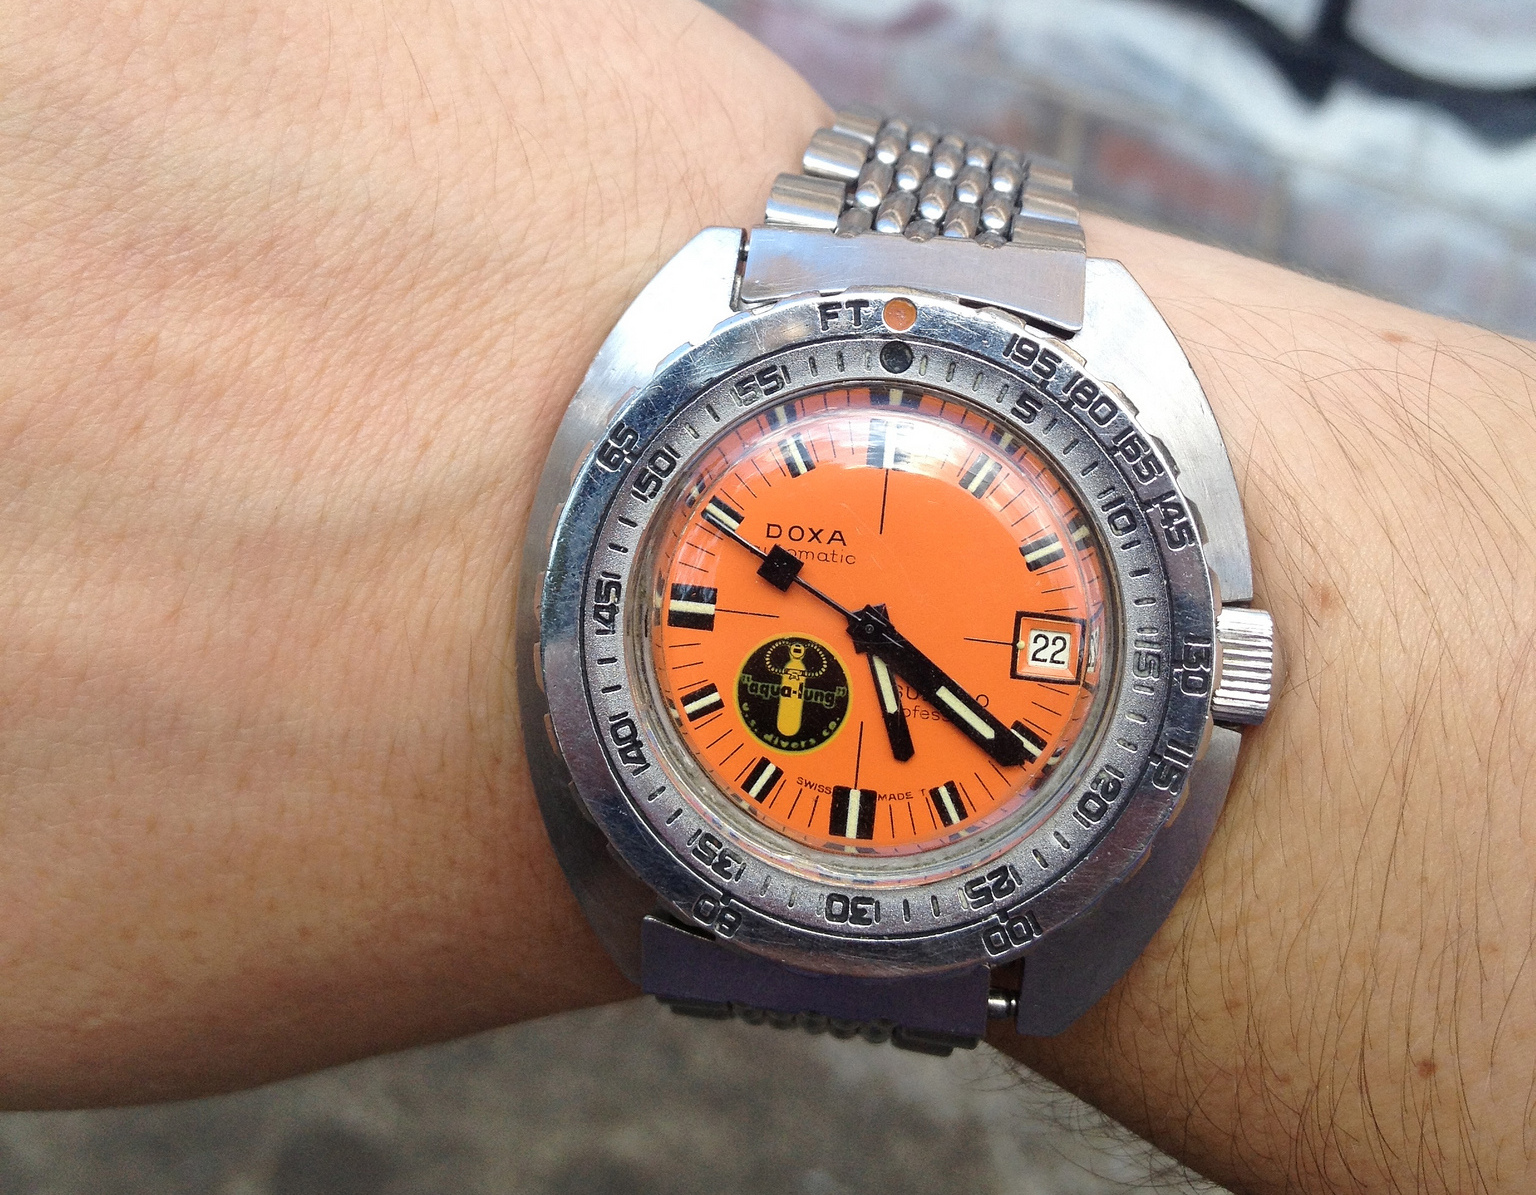 doxa sub300 professional black-lung prototype vintage 1967 - source dreamchrono